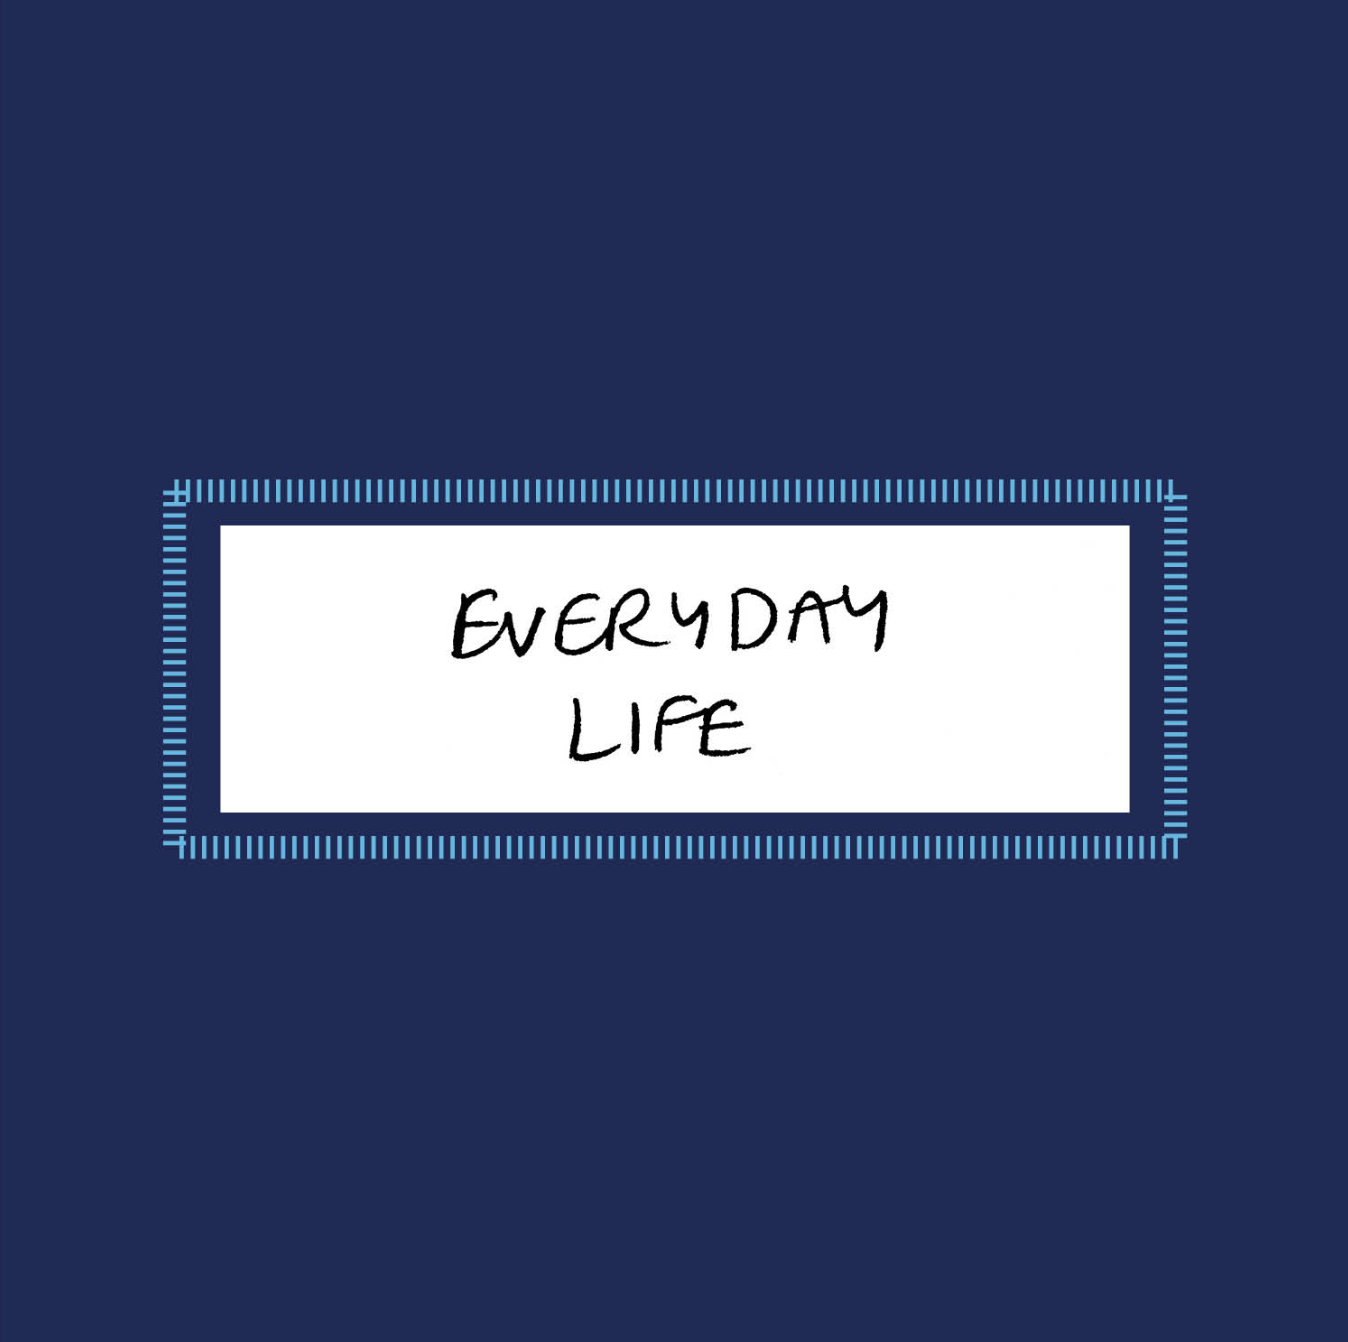 Everyday Life  by Liv Lansdale